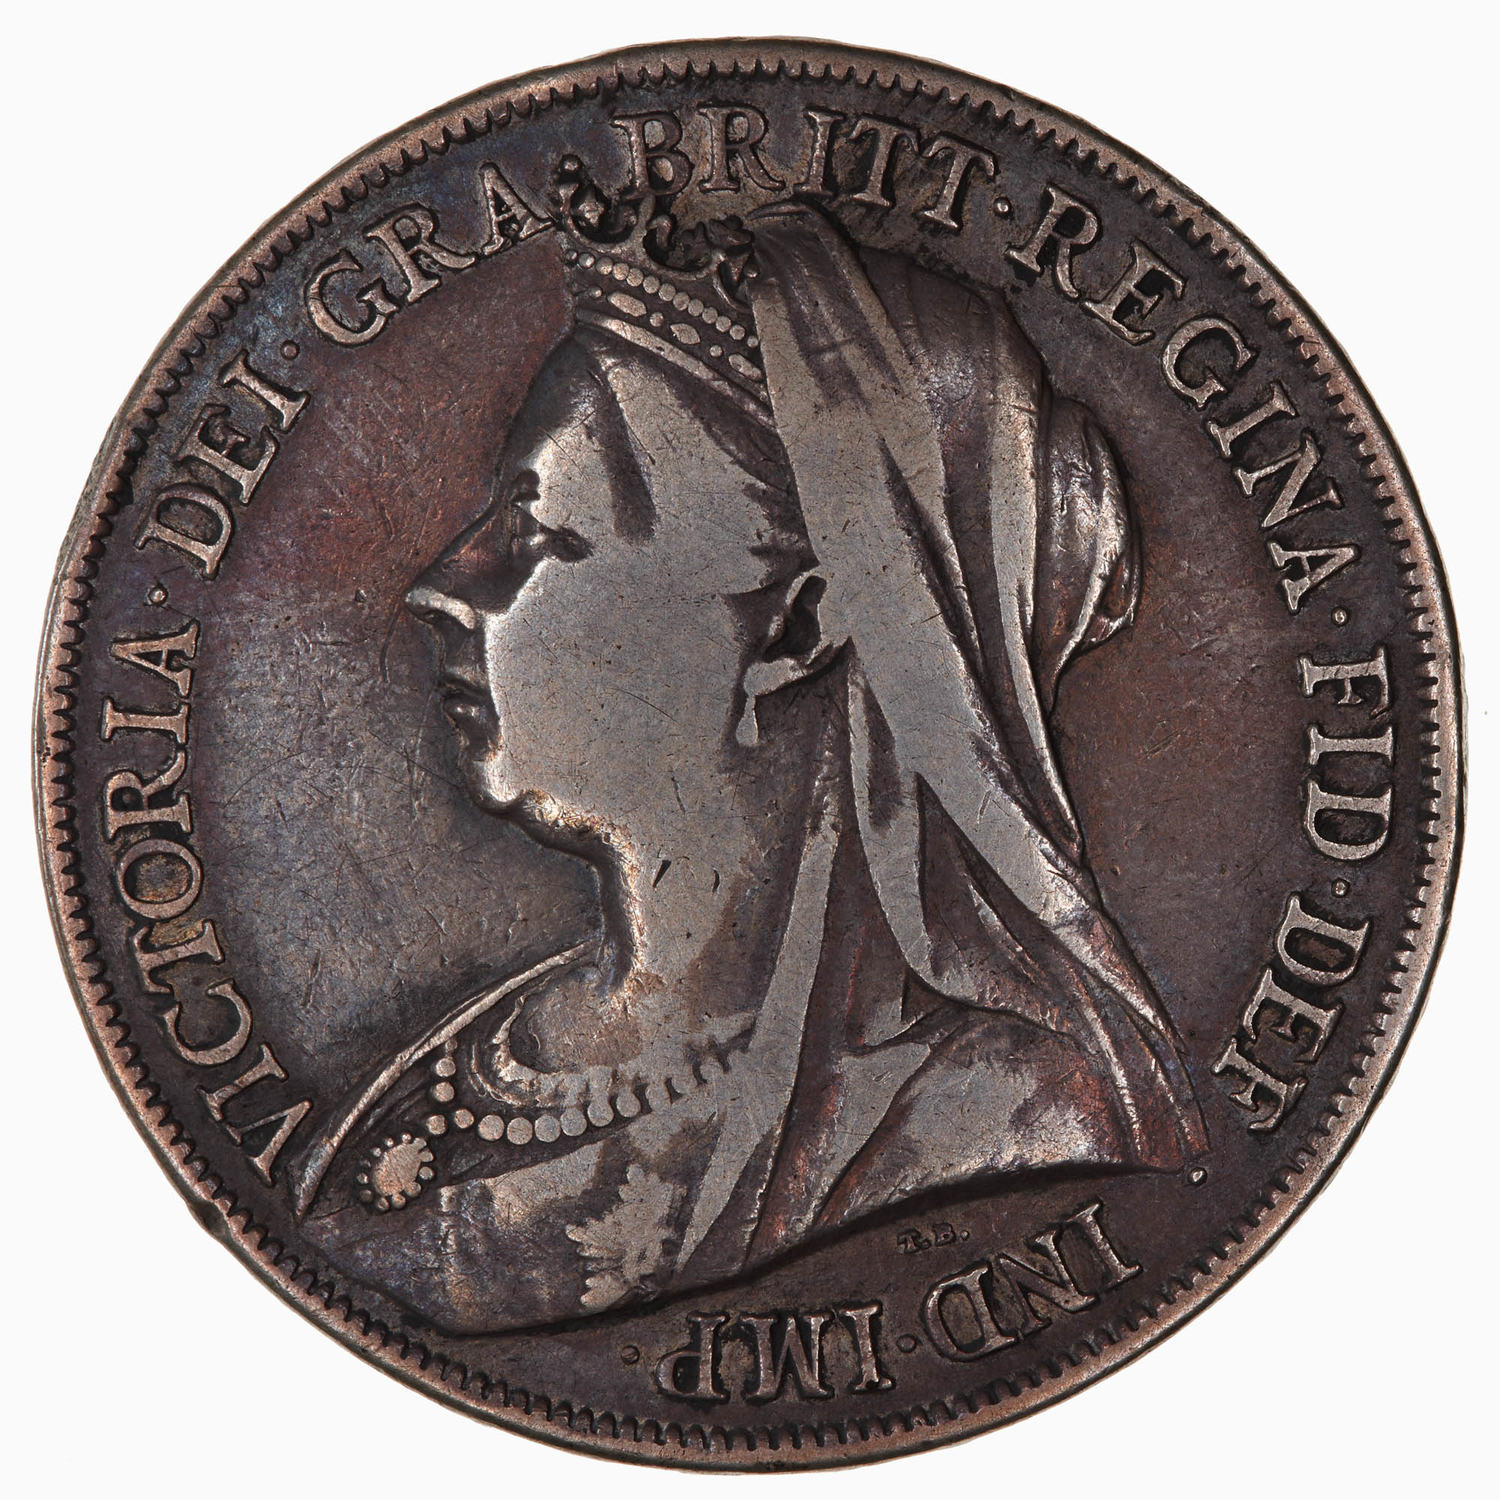 Crown 1899: Photo Coin - Crown, Queen Victoria, Great Britain, 1899